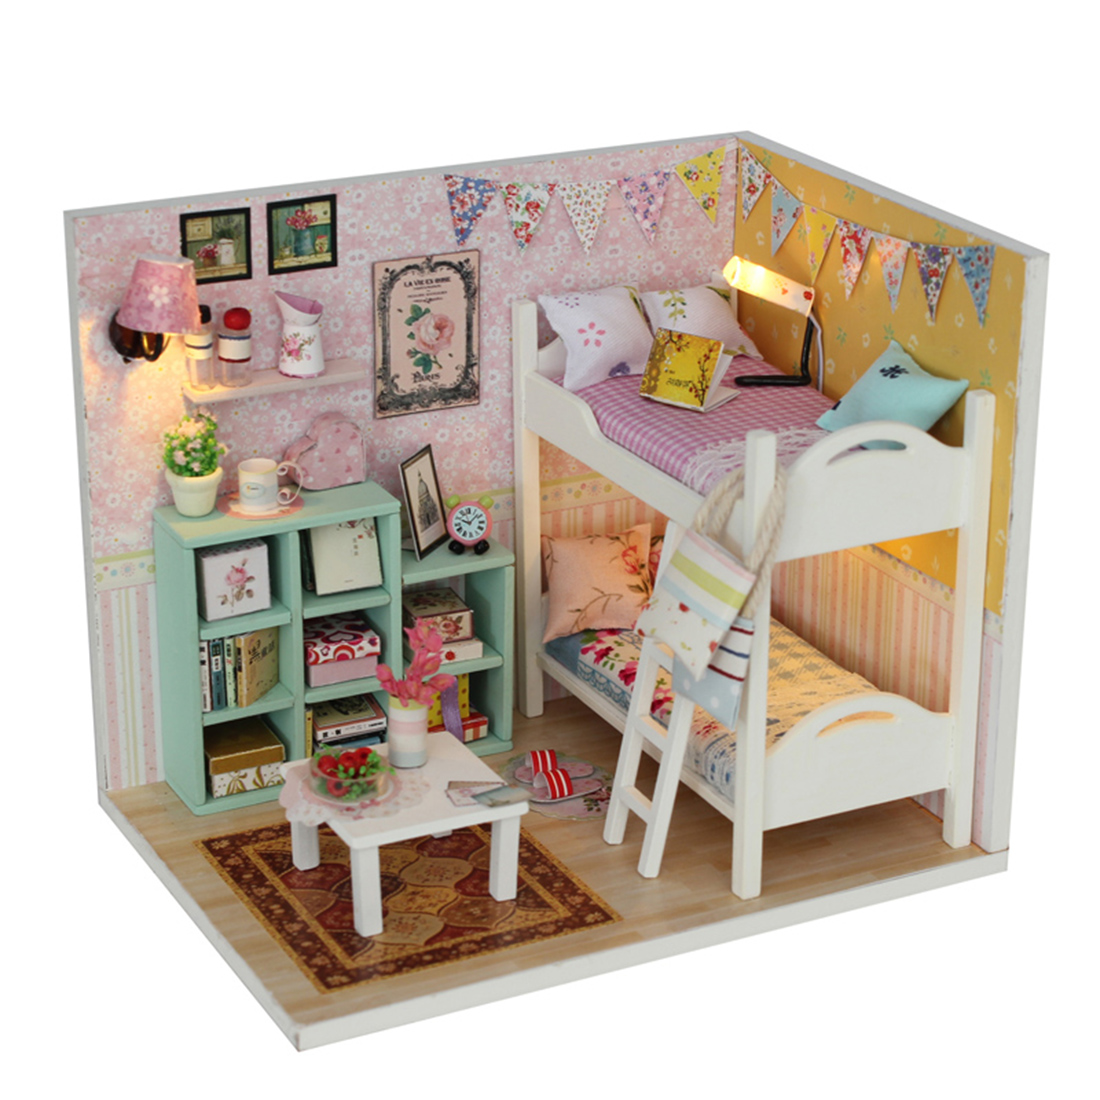 Hot Doll House DIY Creative Handmade Theme Wooden Cabin Assembly Building Model Toy Set With Light And Dust Cover - Girlfriends